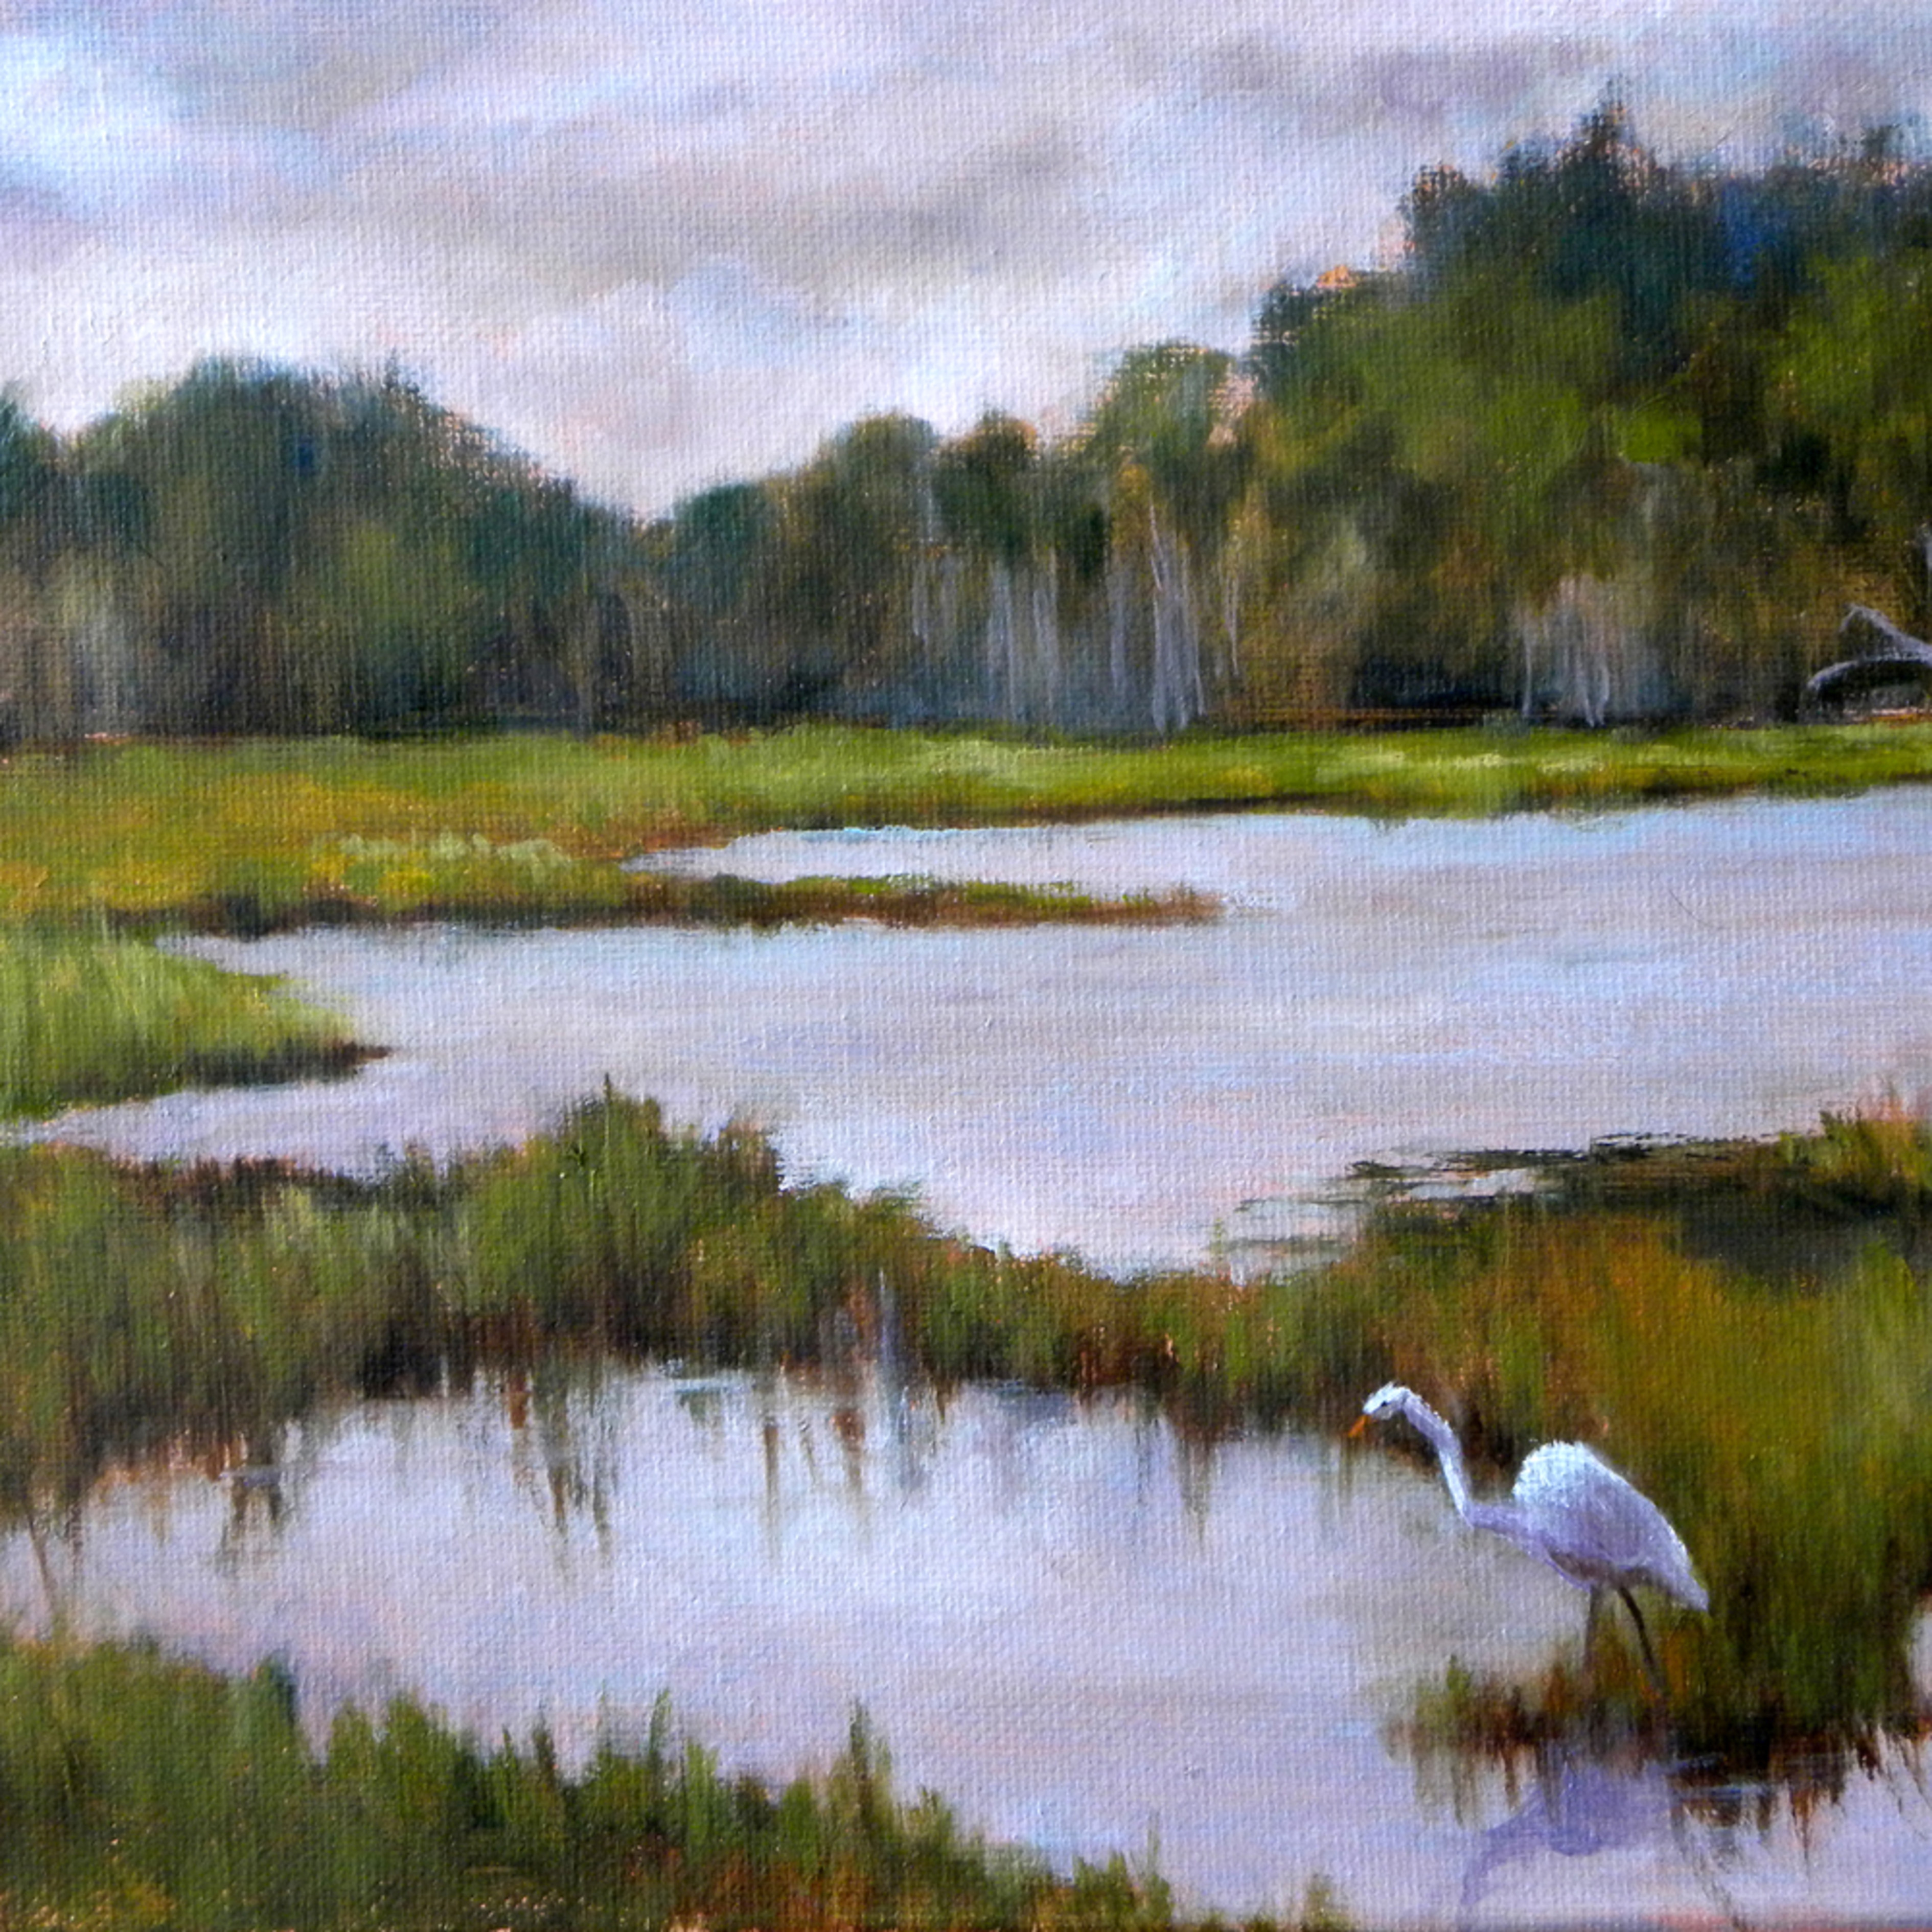 Life in the low country lgugev